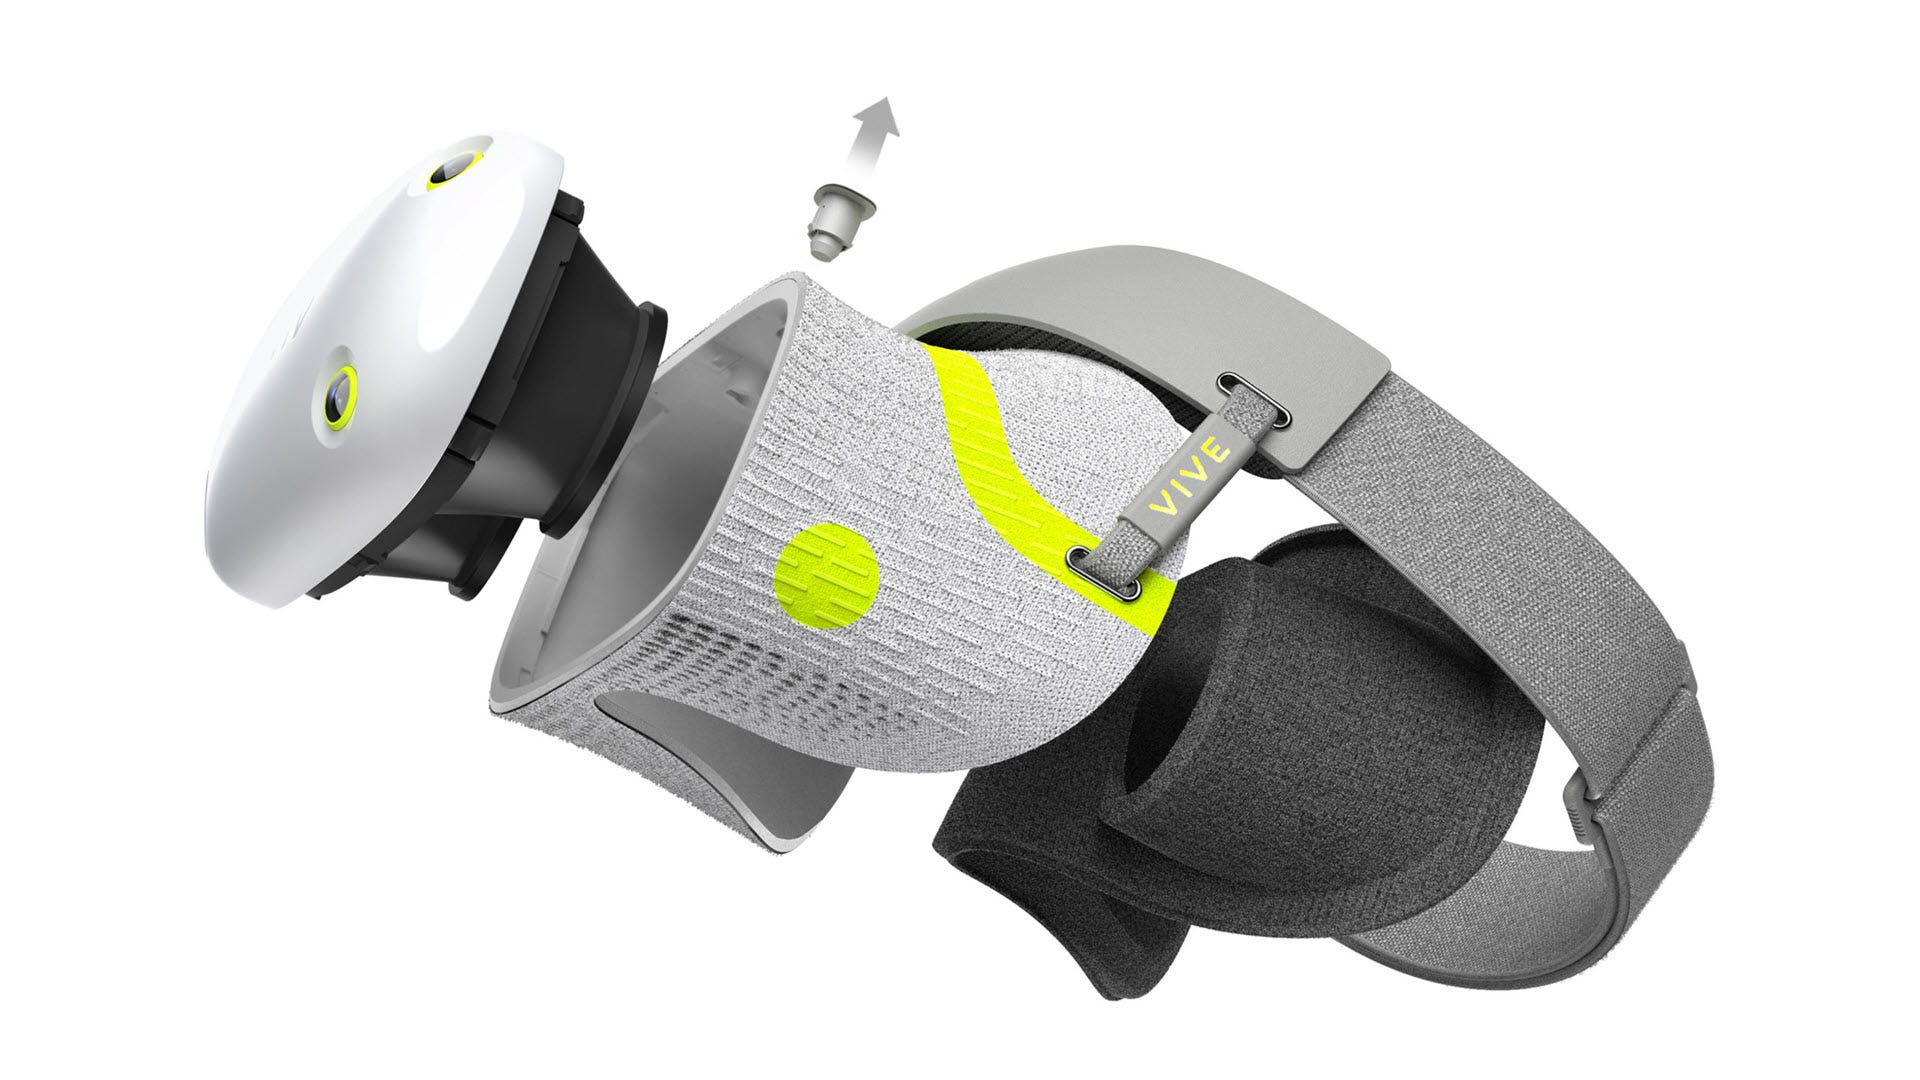 A shoe-material VR headset, with the display face plate removed